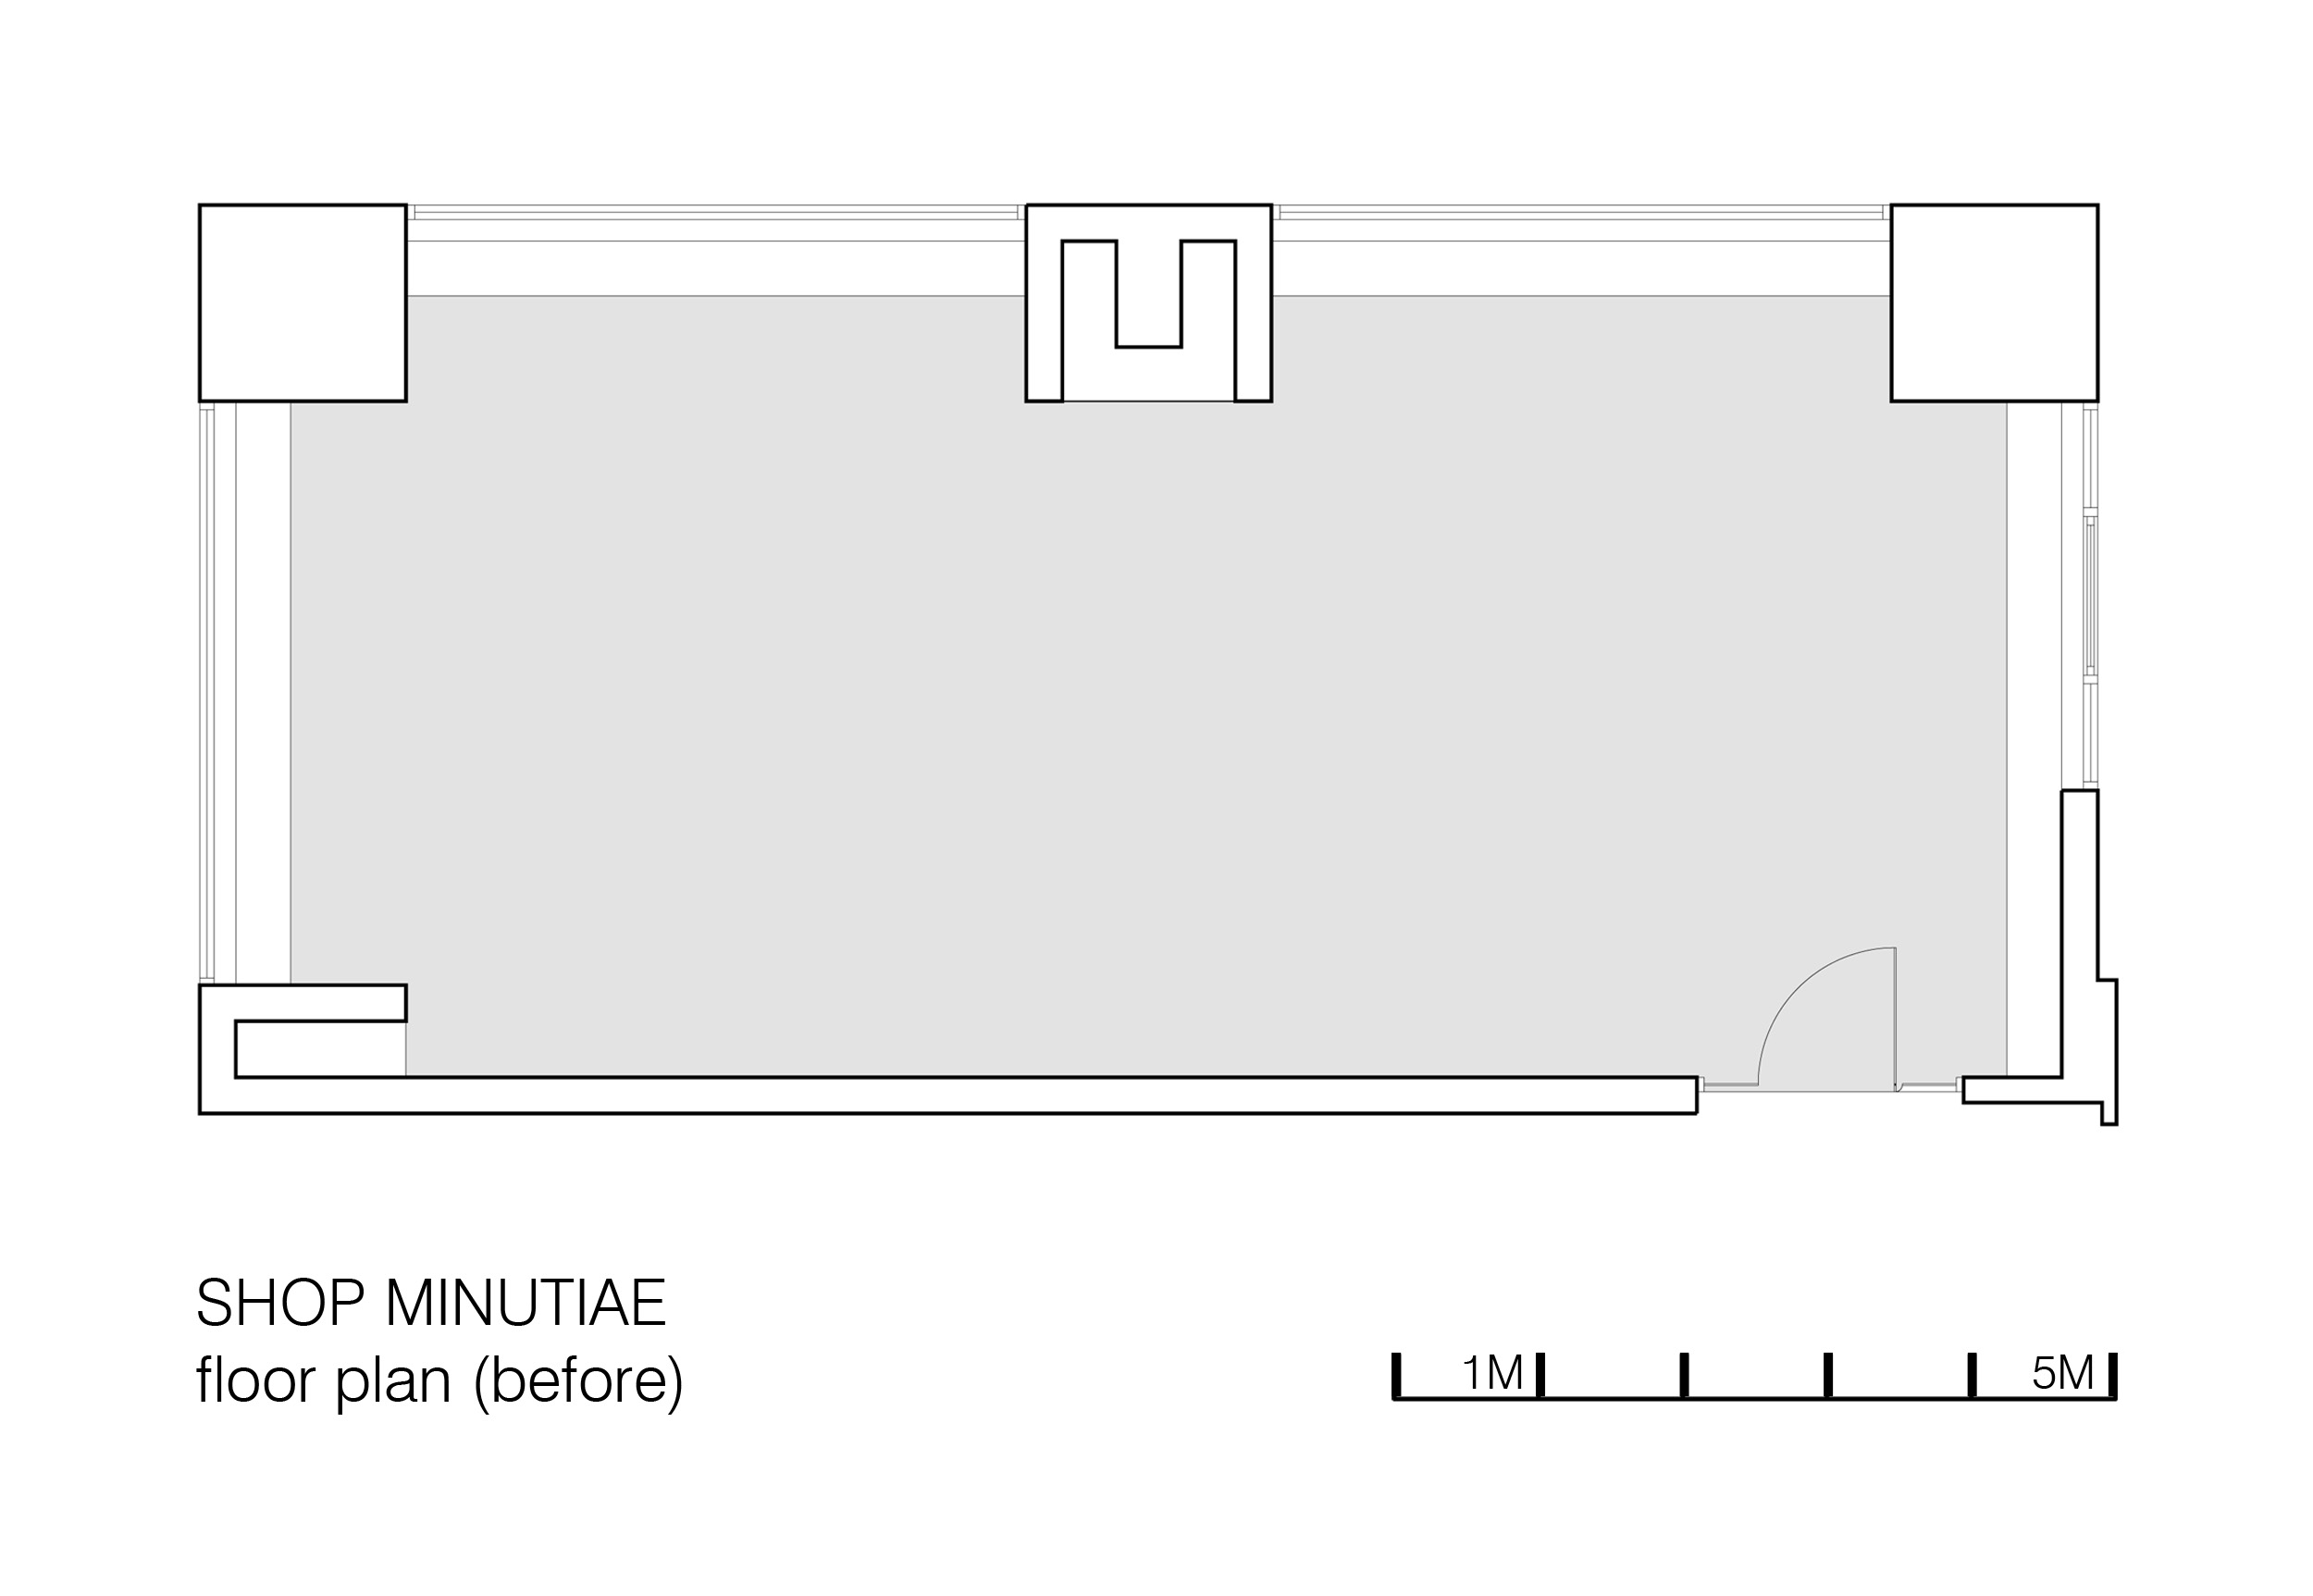 Shop Minutiae Floorplan (before)